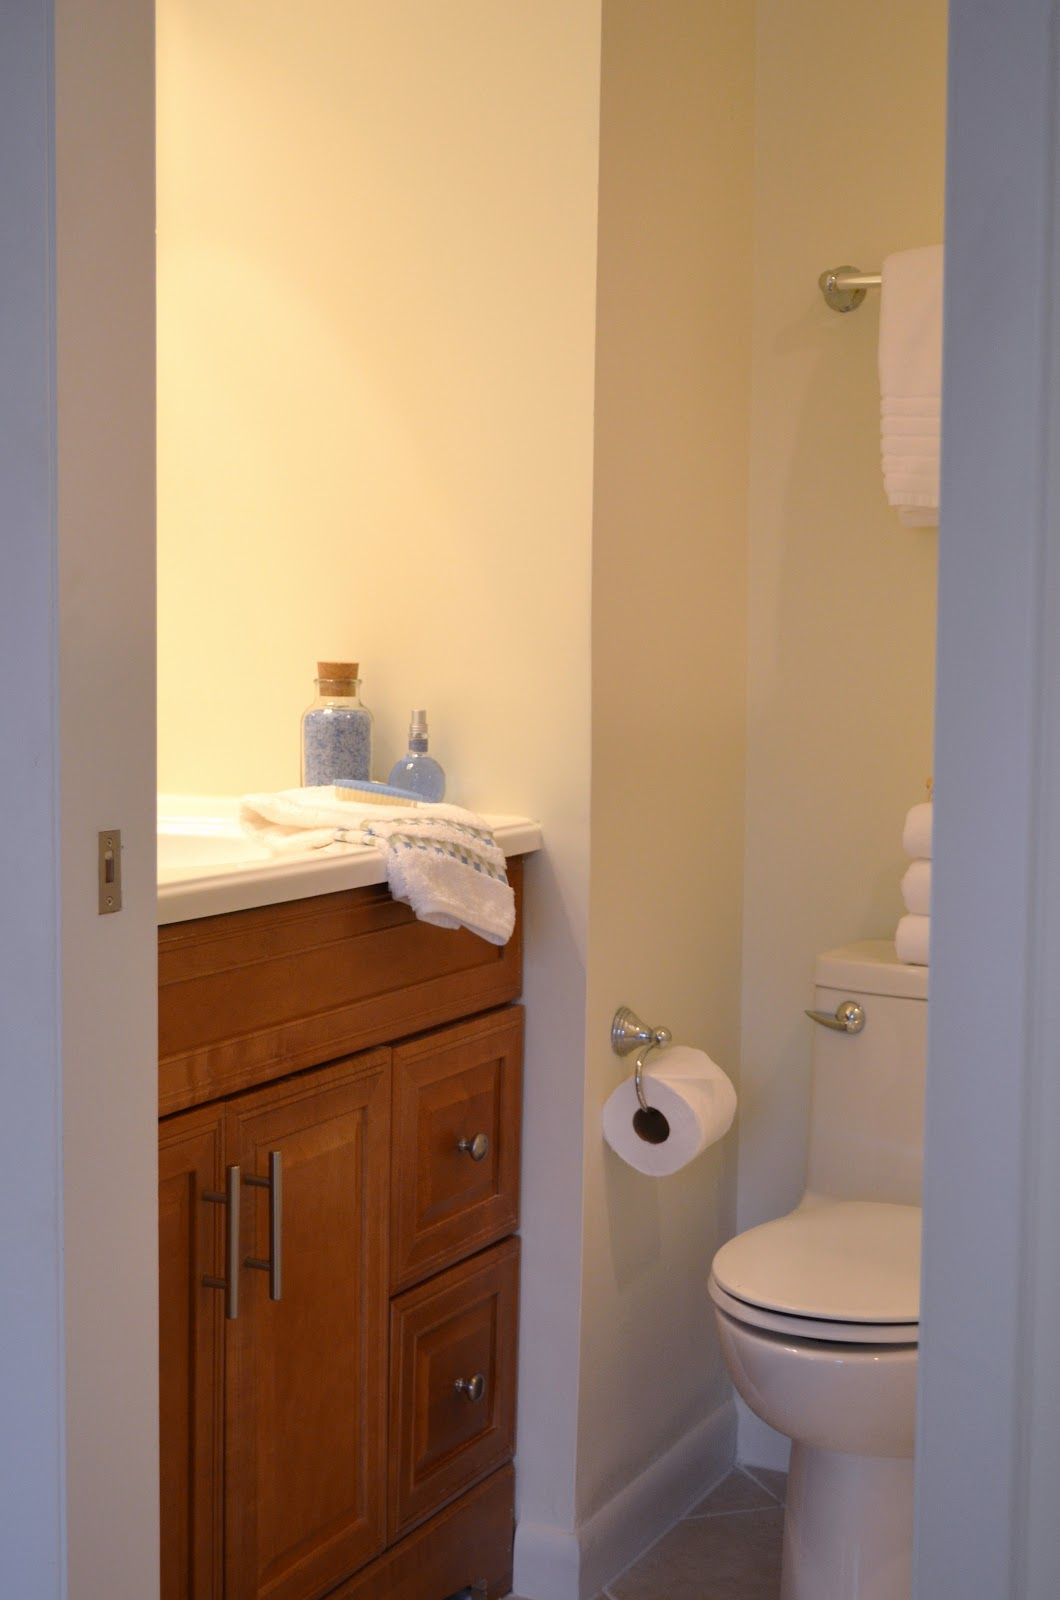 Acorn bathroom furniture - Bathroom Renovations How To Get The Most Out Of Small Spaces